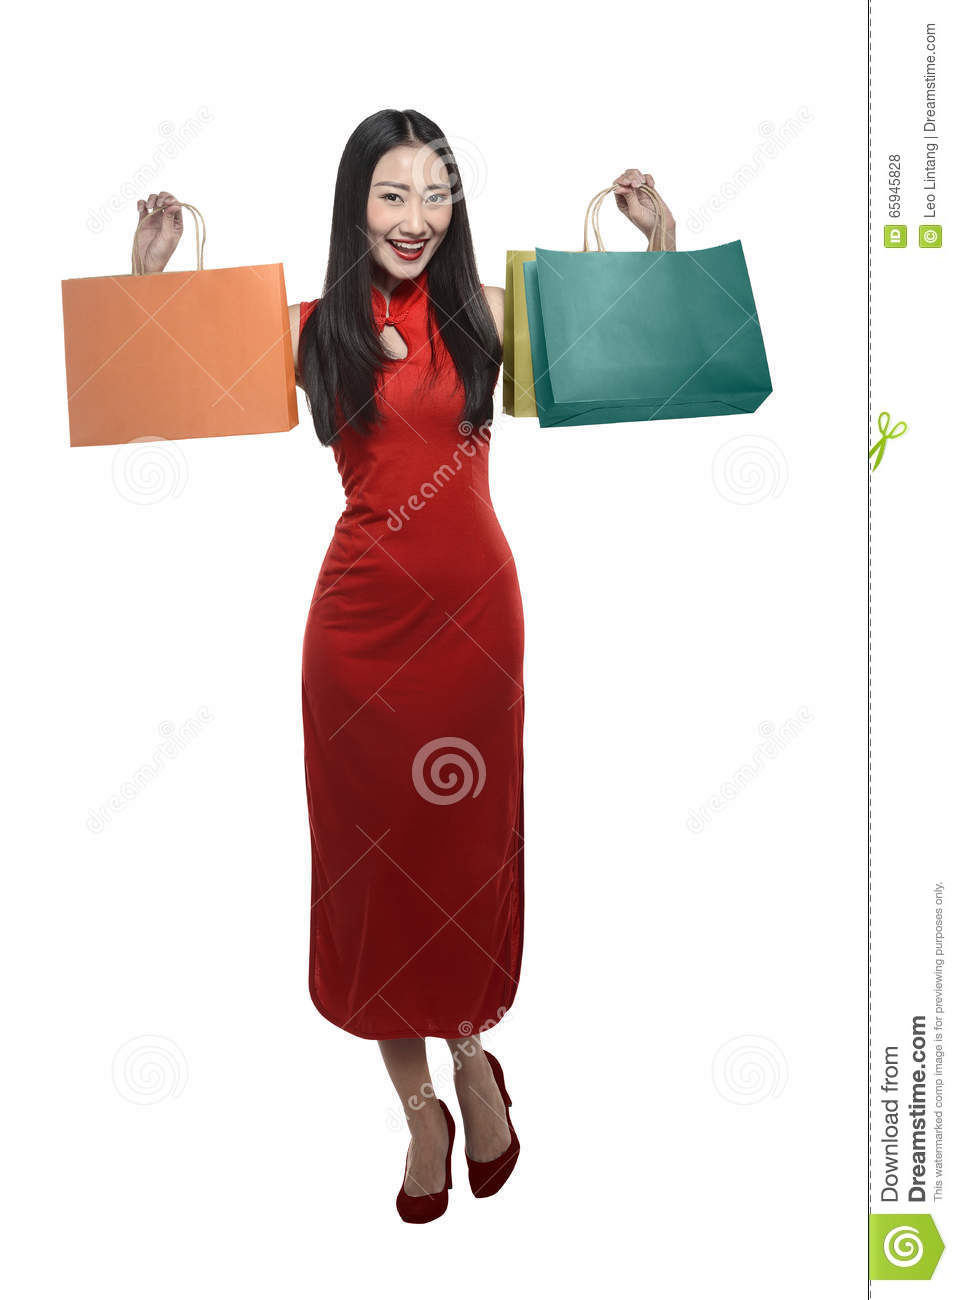 Chinese culture and women in business